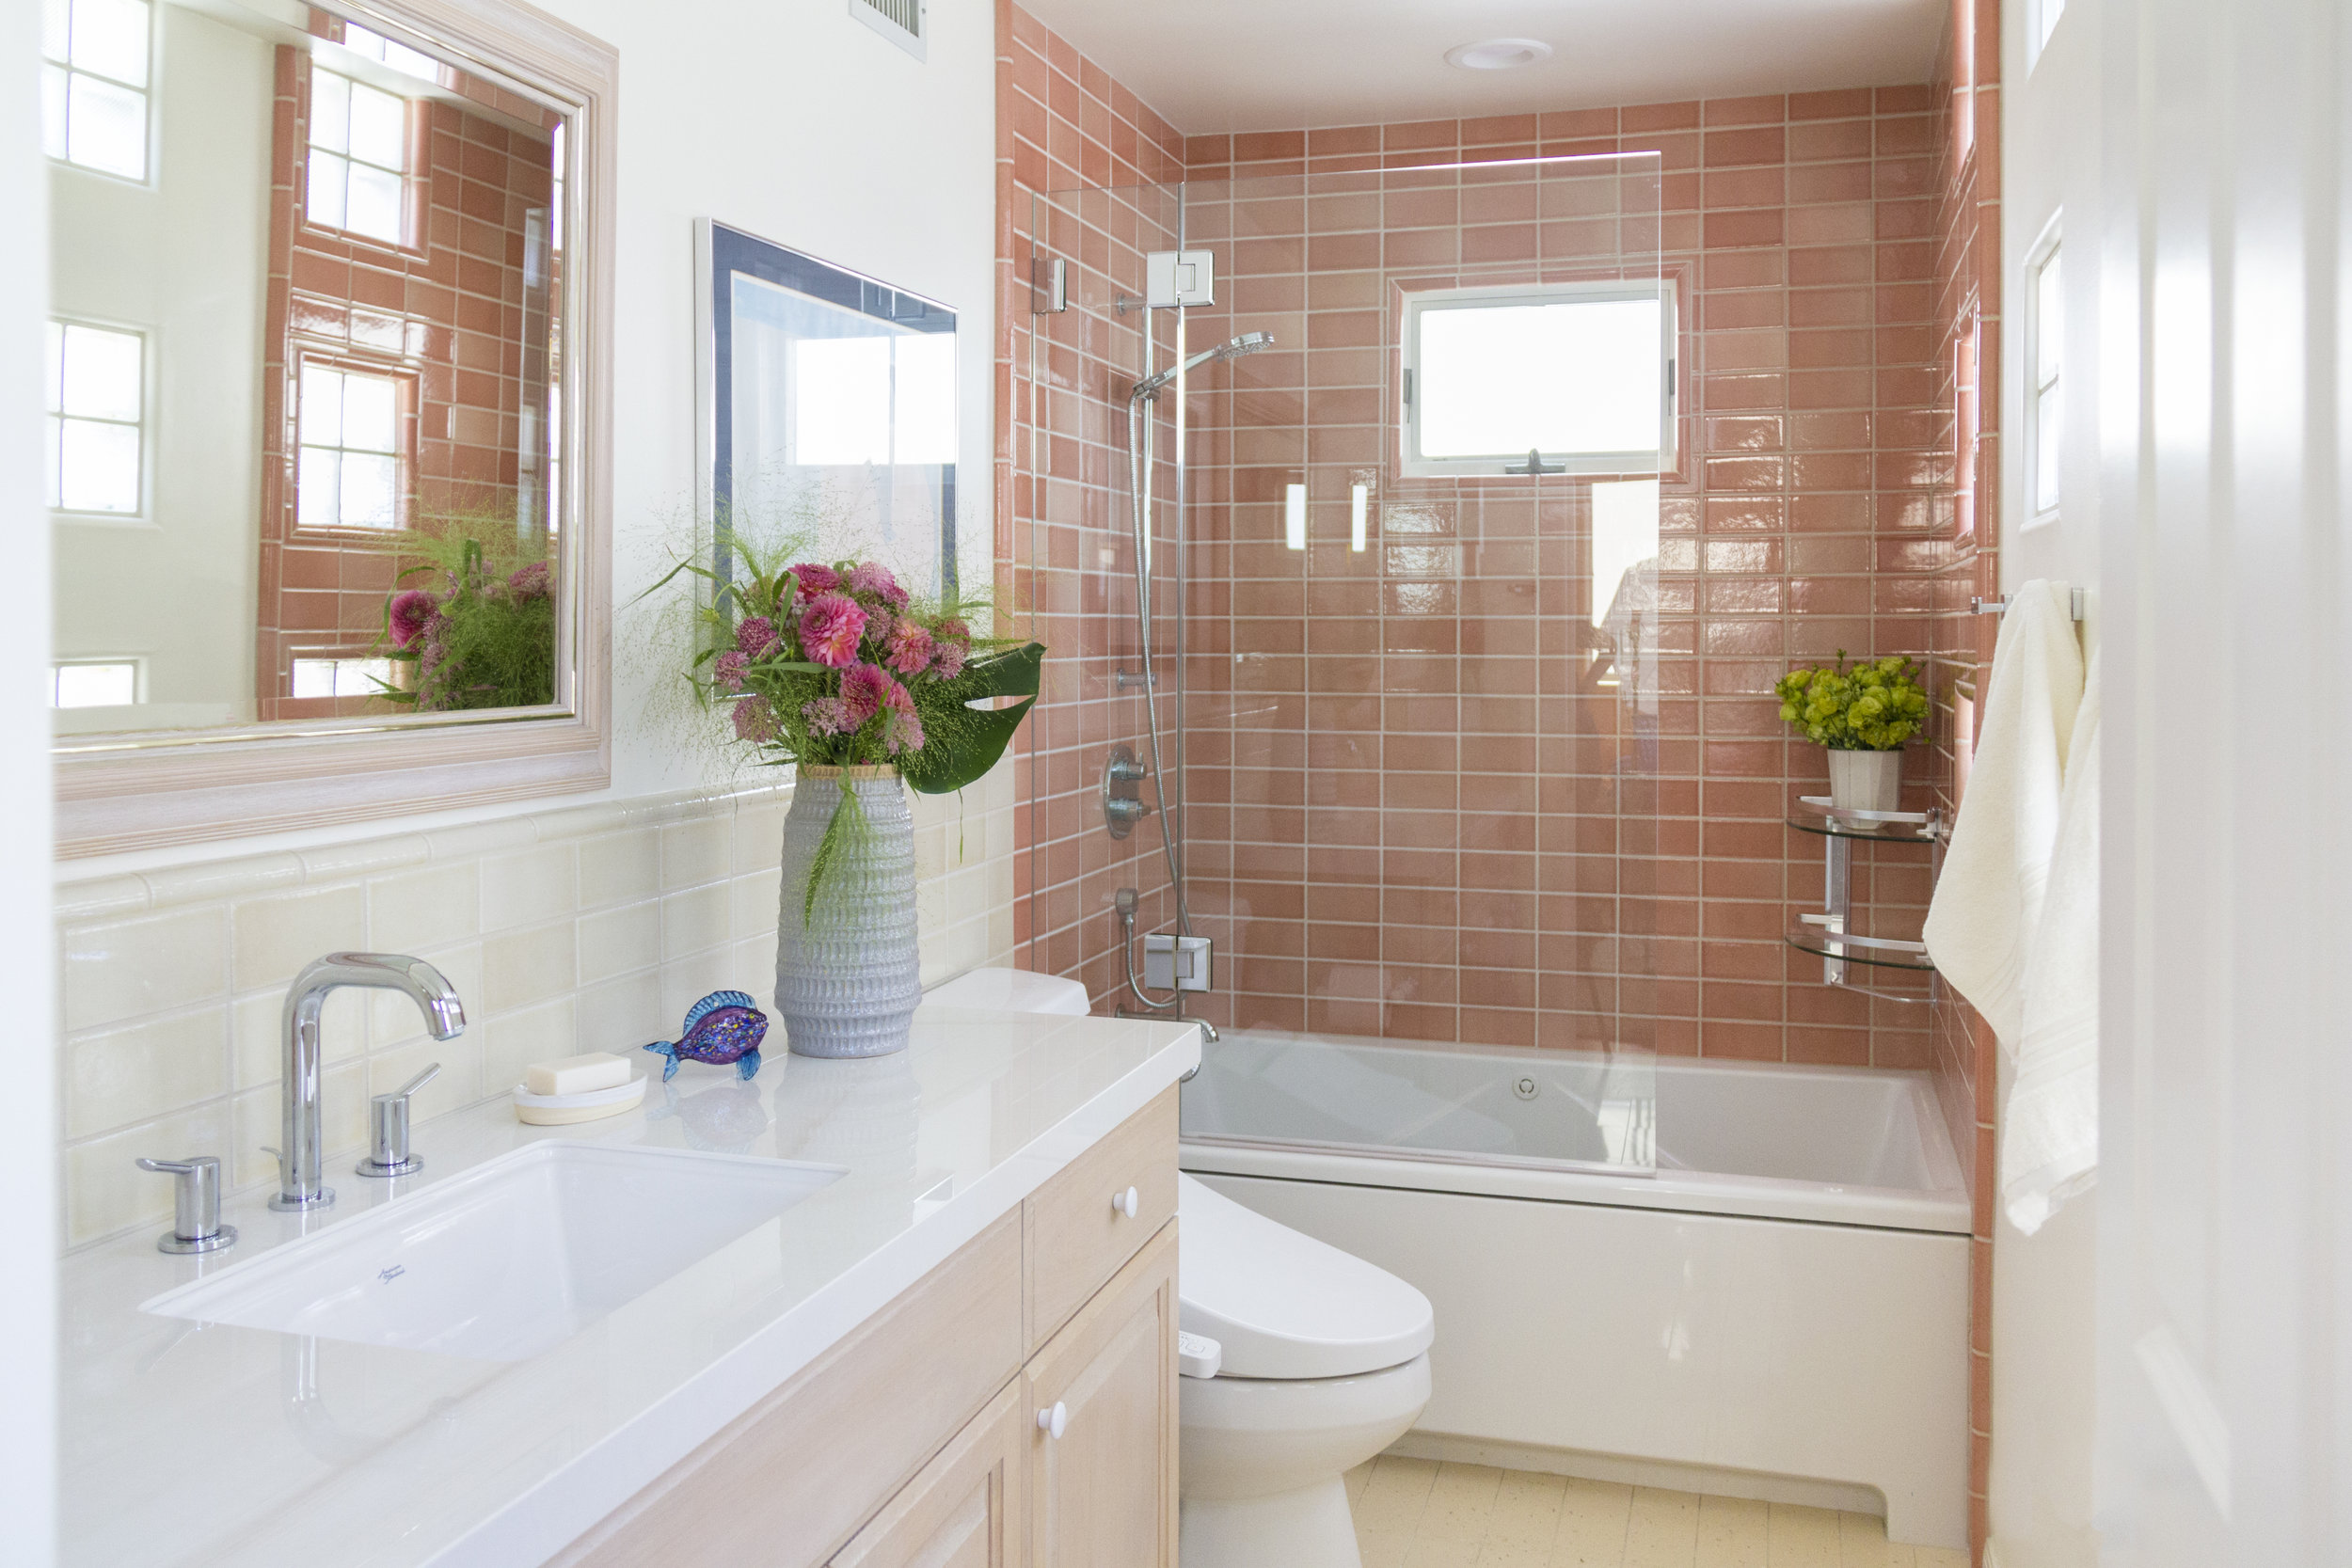 Cheerful coral pink tile pairs beautifully with flowers.